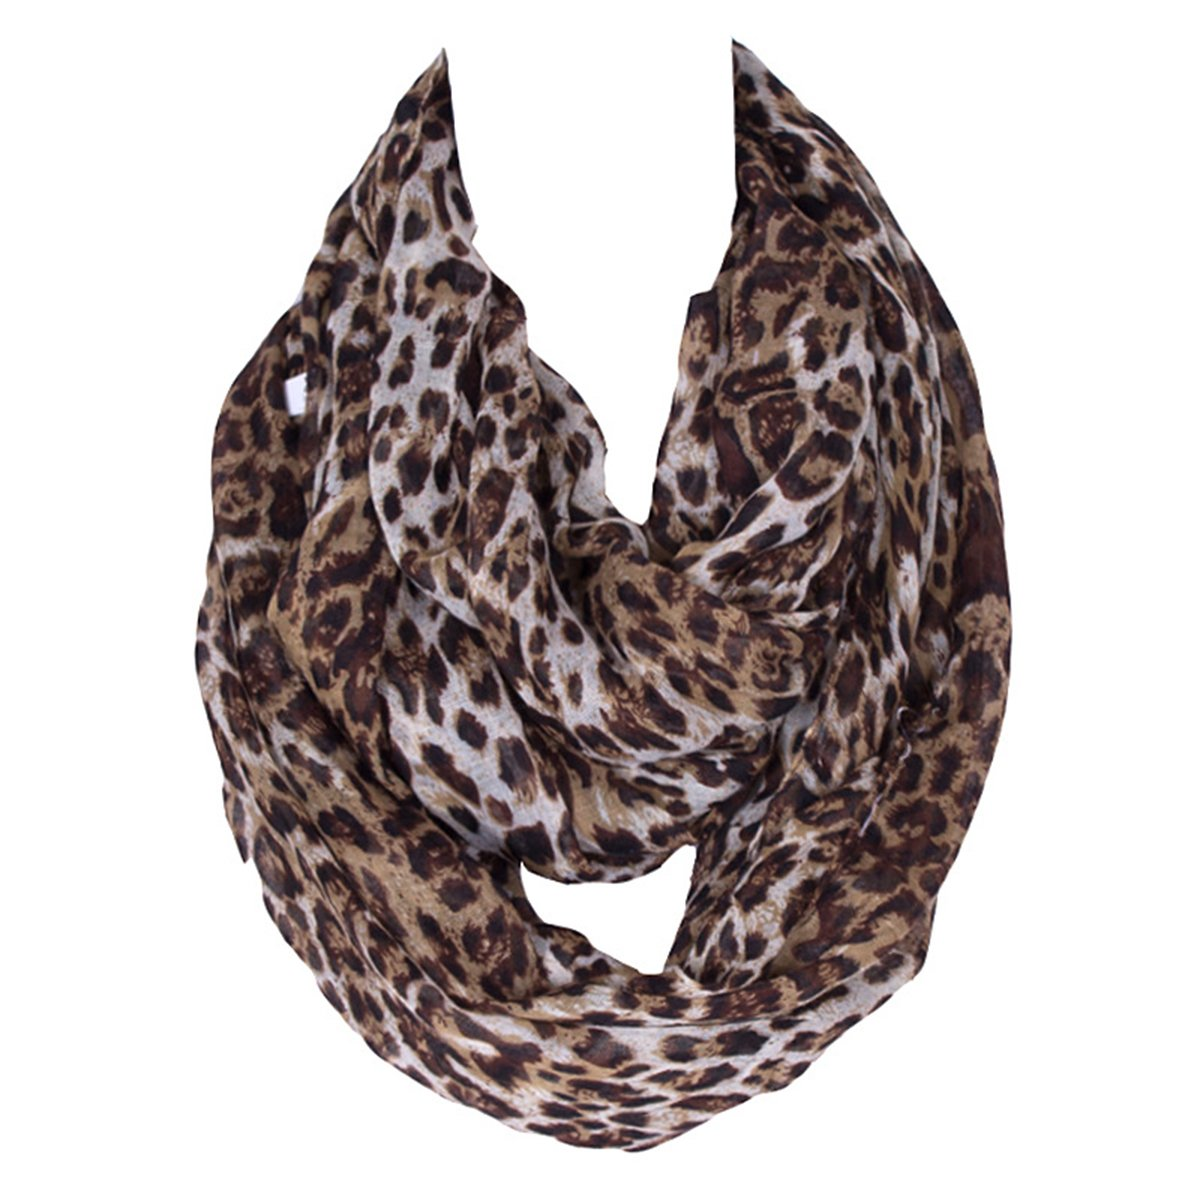 Butterme mujeres Various Artist Imprimé luz dulce peso Fashion infinity bucle círculo bufanda Chevron Sheer infinity Scarf Pañuelo, style#1 ZUMUii